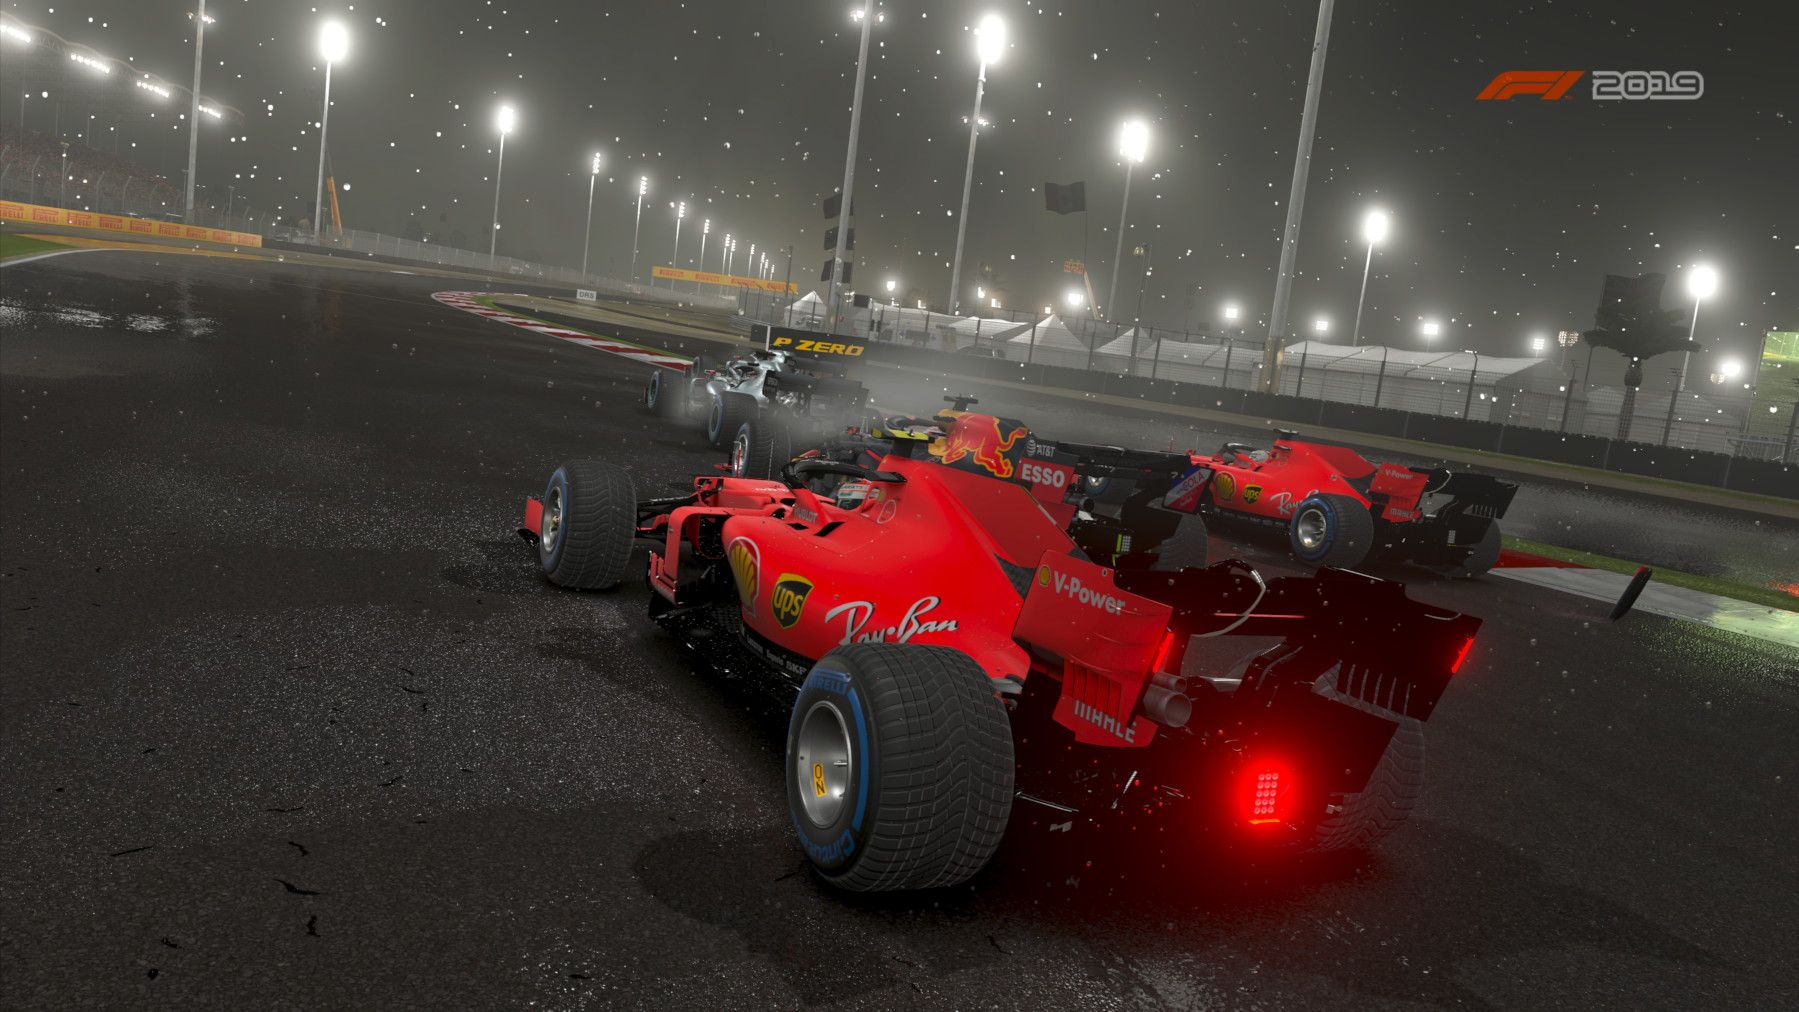 Review: F1 2019 (Xbox One X) - SA Gamer